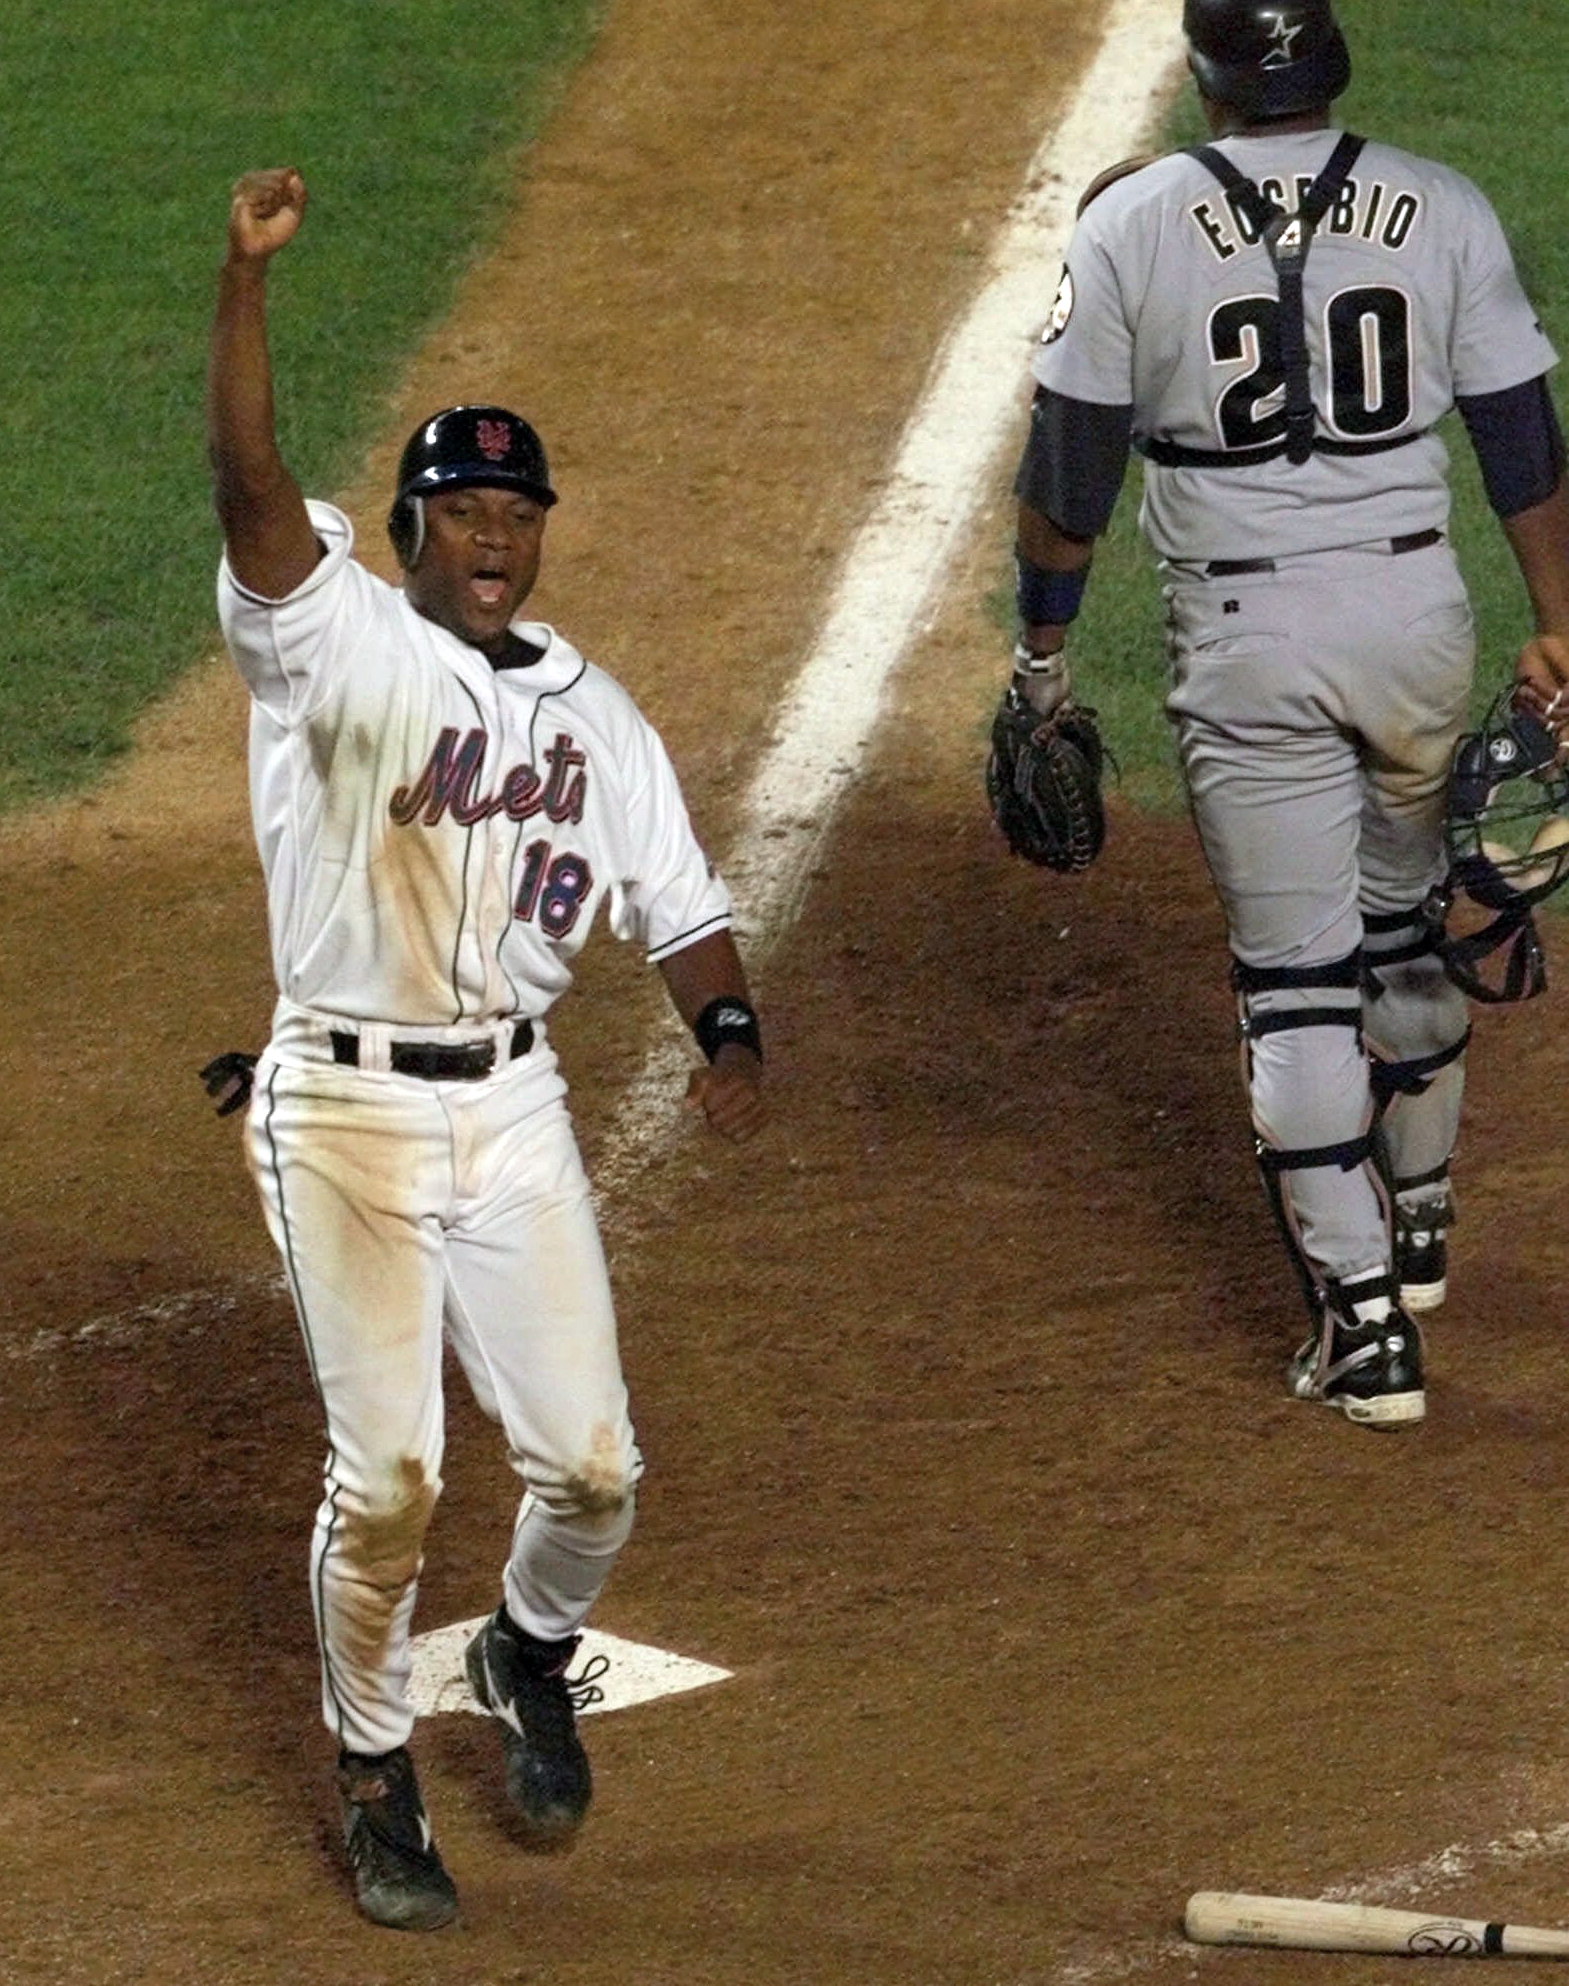 FILE - In this Aug. 23, 1999, file photo, New York Mets' Darryl Hamilton celebrates as he scores the game-winning run on a Matt Franco hit to left field in the bottom of the ninth inning that gave the Mets a 3-2 victory over the Houston Astros in a baseba